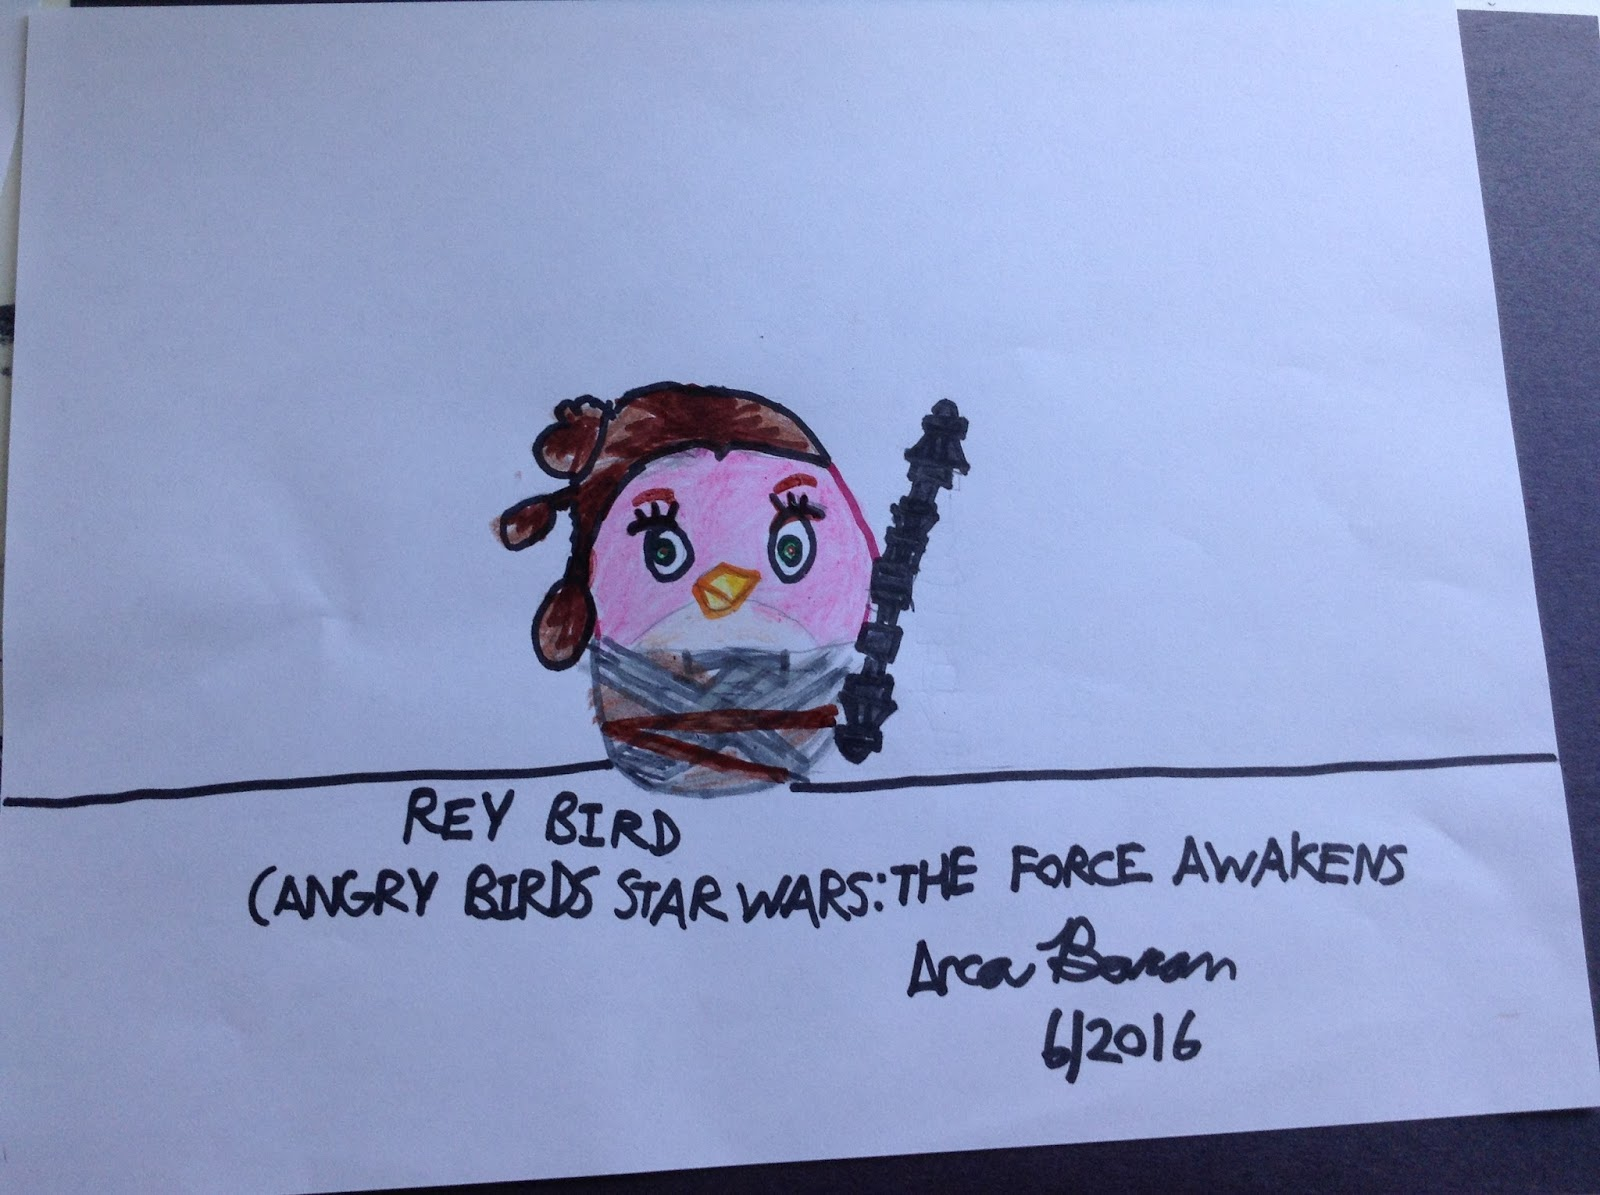 Angry birds star wars the force awakens fan art kylo ren - Angry birds star wars 7 ...